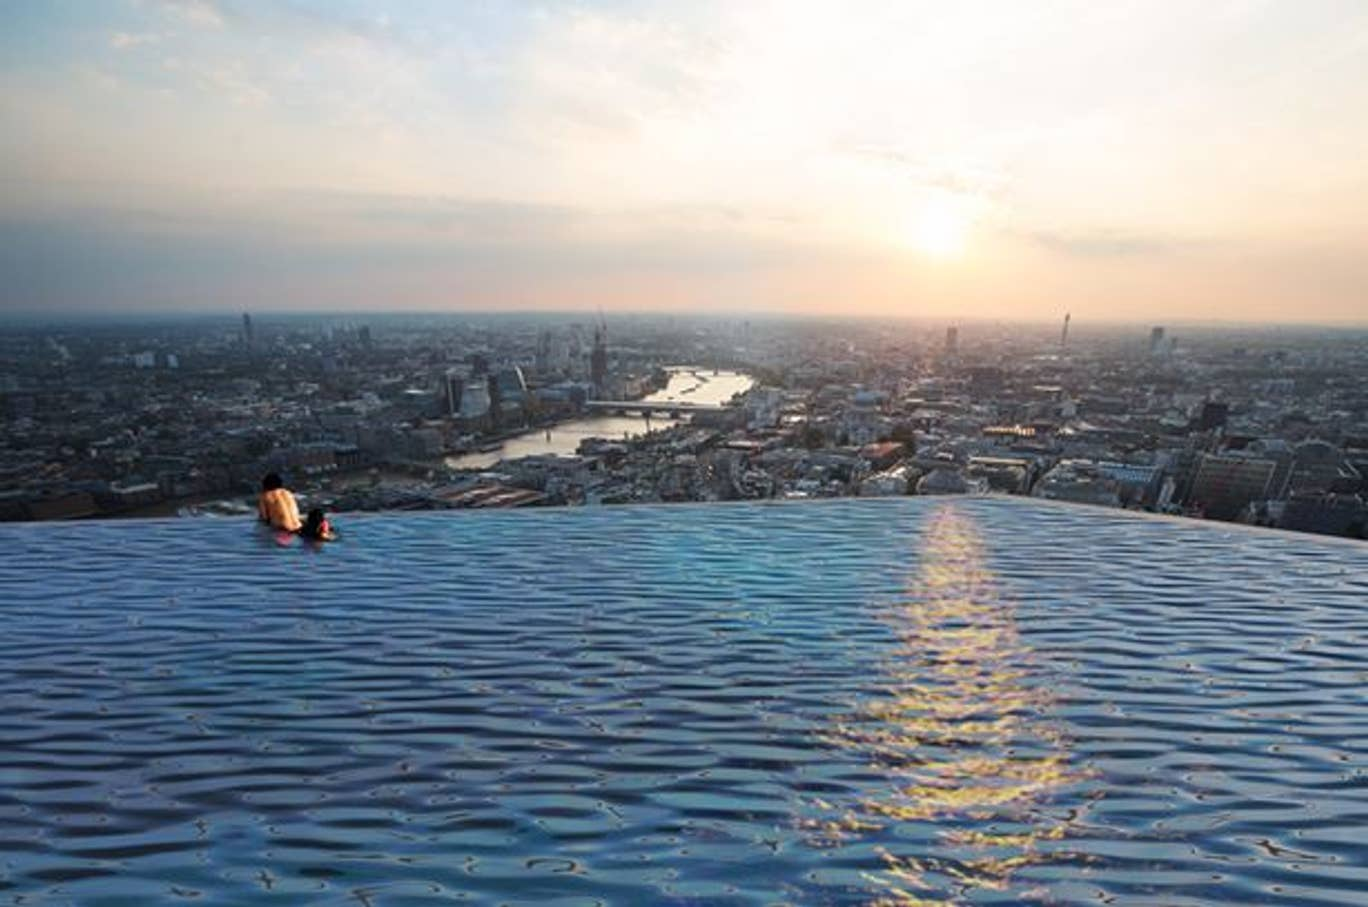 London to get 'world's first' infinity pool with 360-degree views""